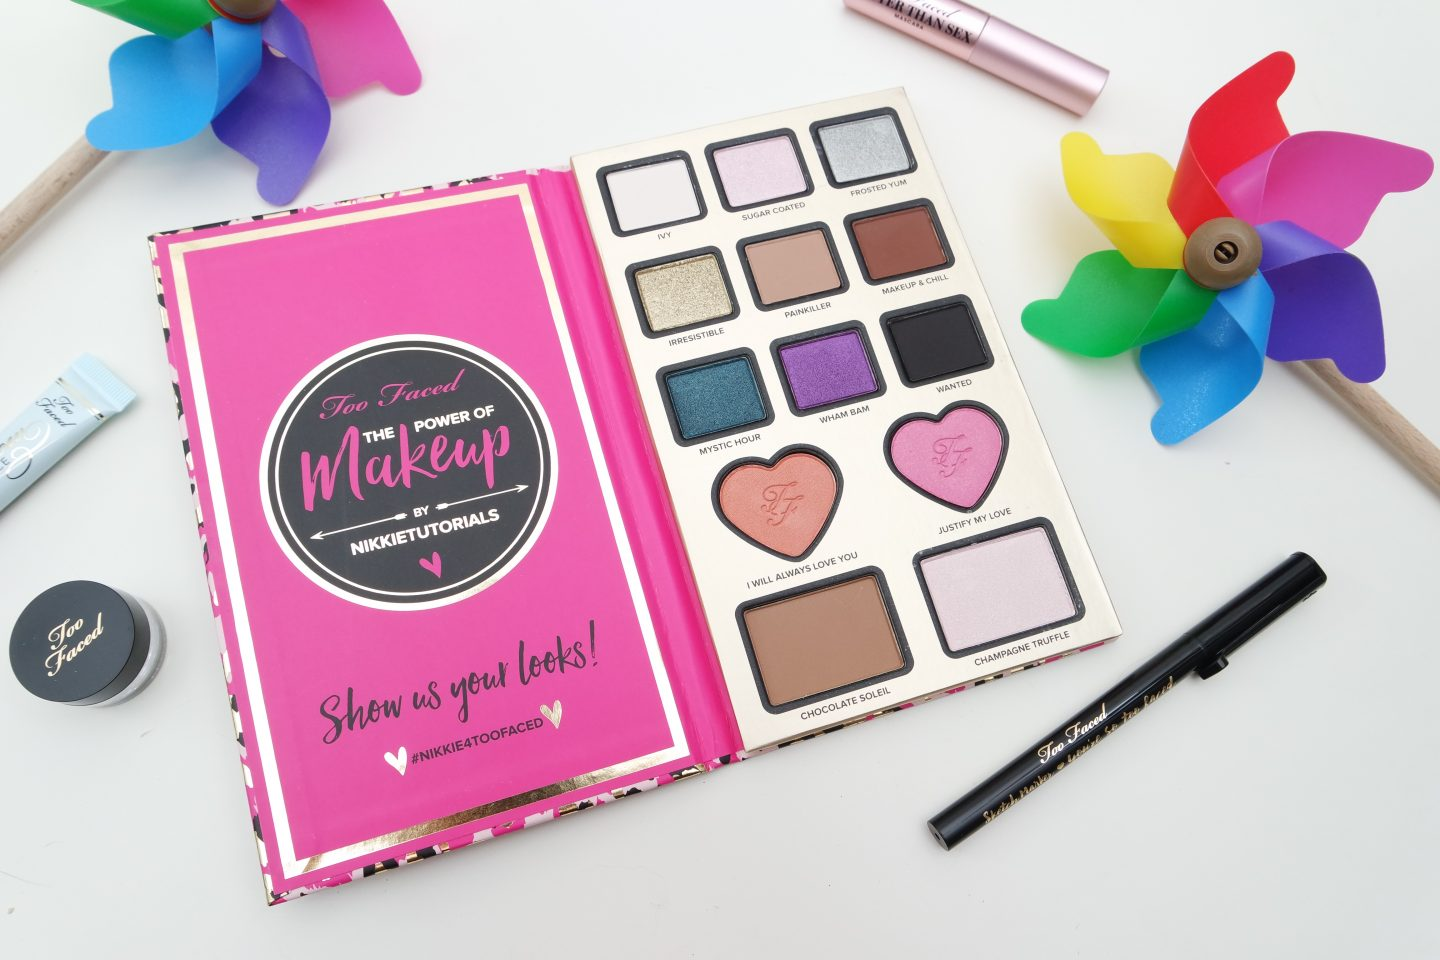 Too Faced The Power of Makeup by Nikkietutorials Collection